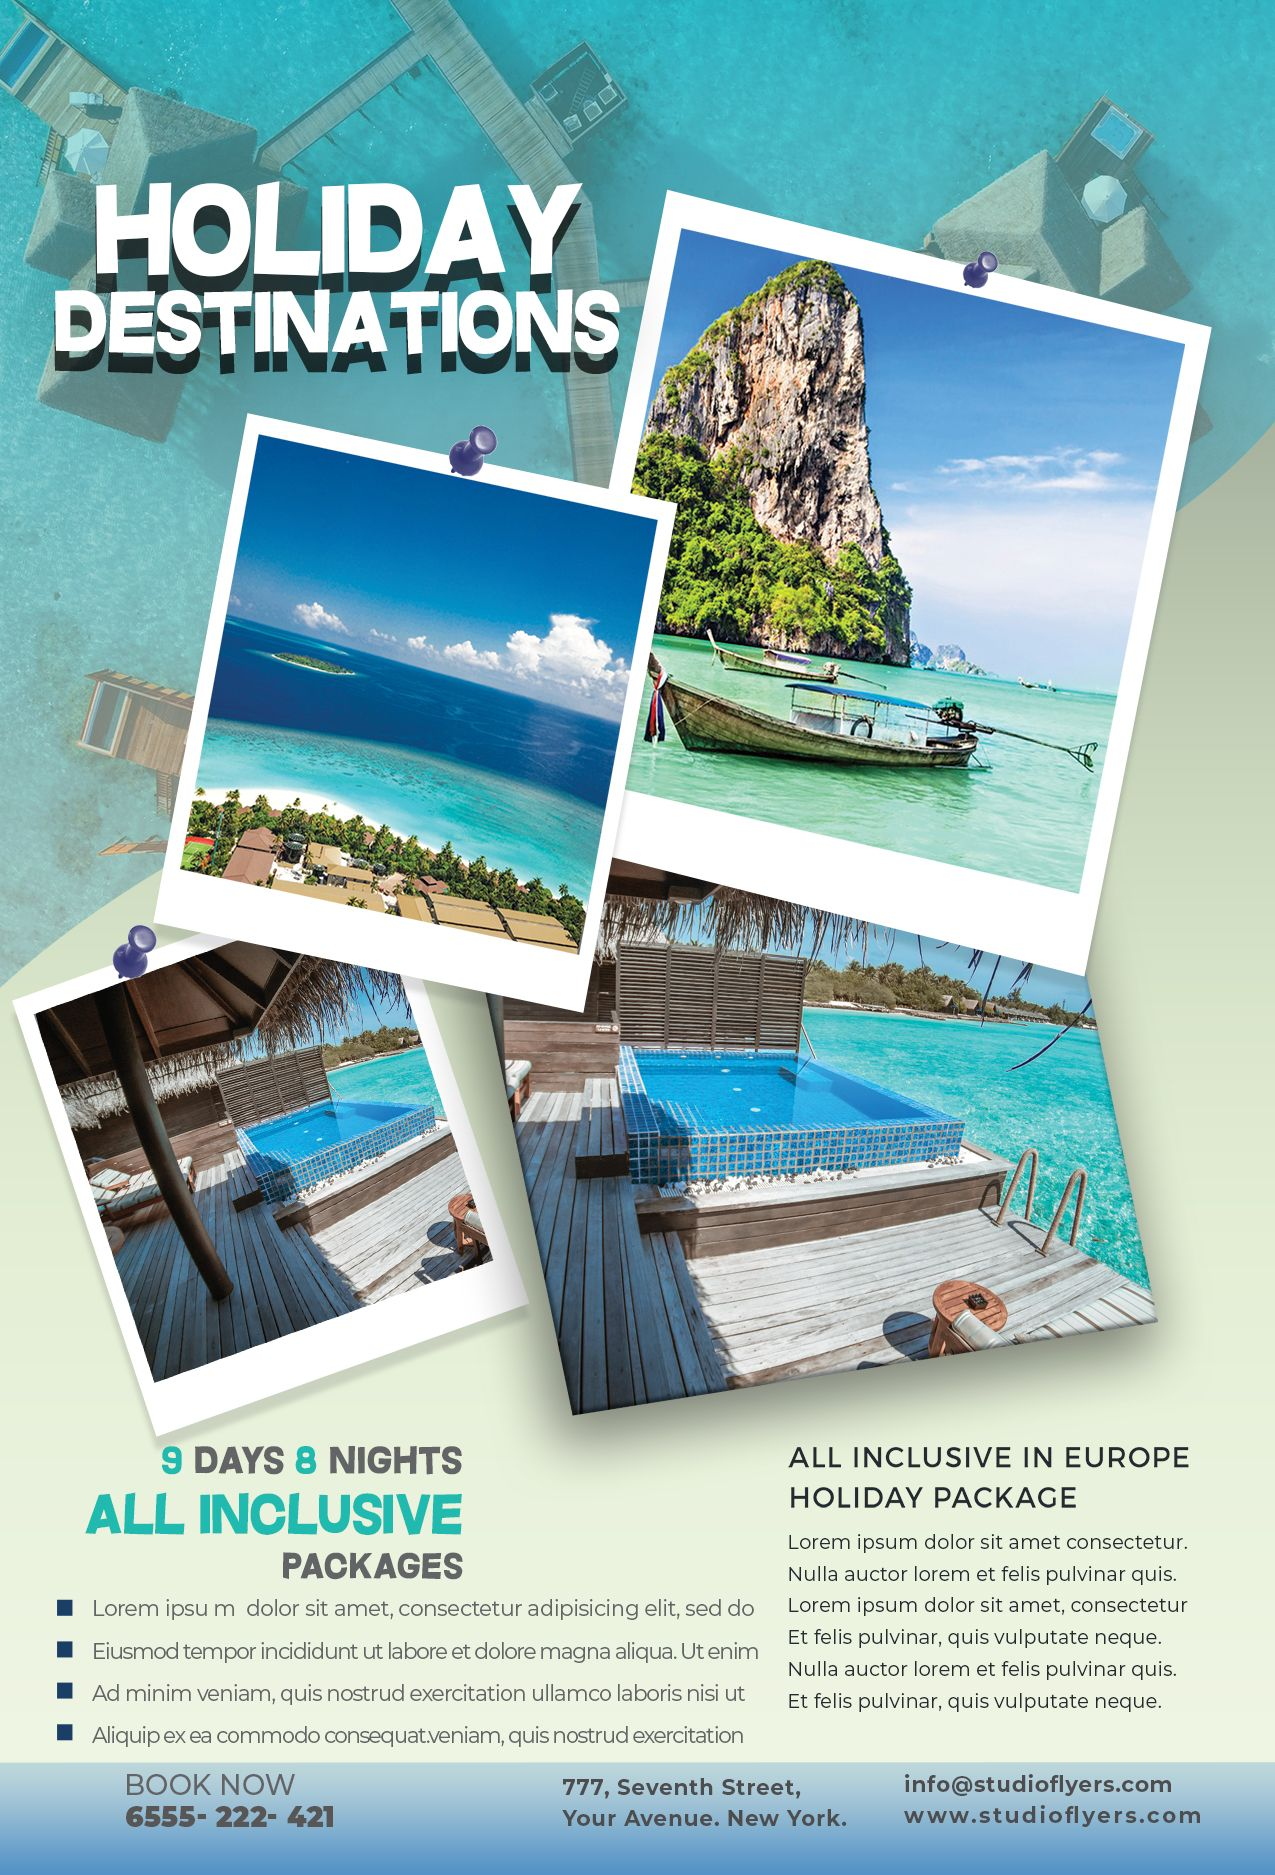 Holiday Vacation Free Psd Flyer Template Studioflyers Com Free Psd Flyer Templates Holiday Vacations Psd Flyer Templates